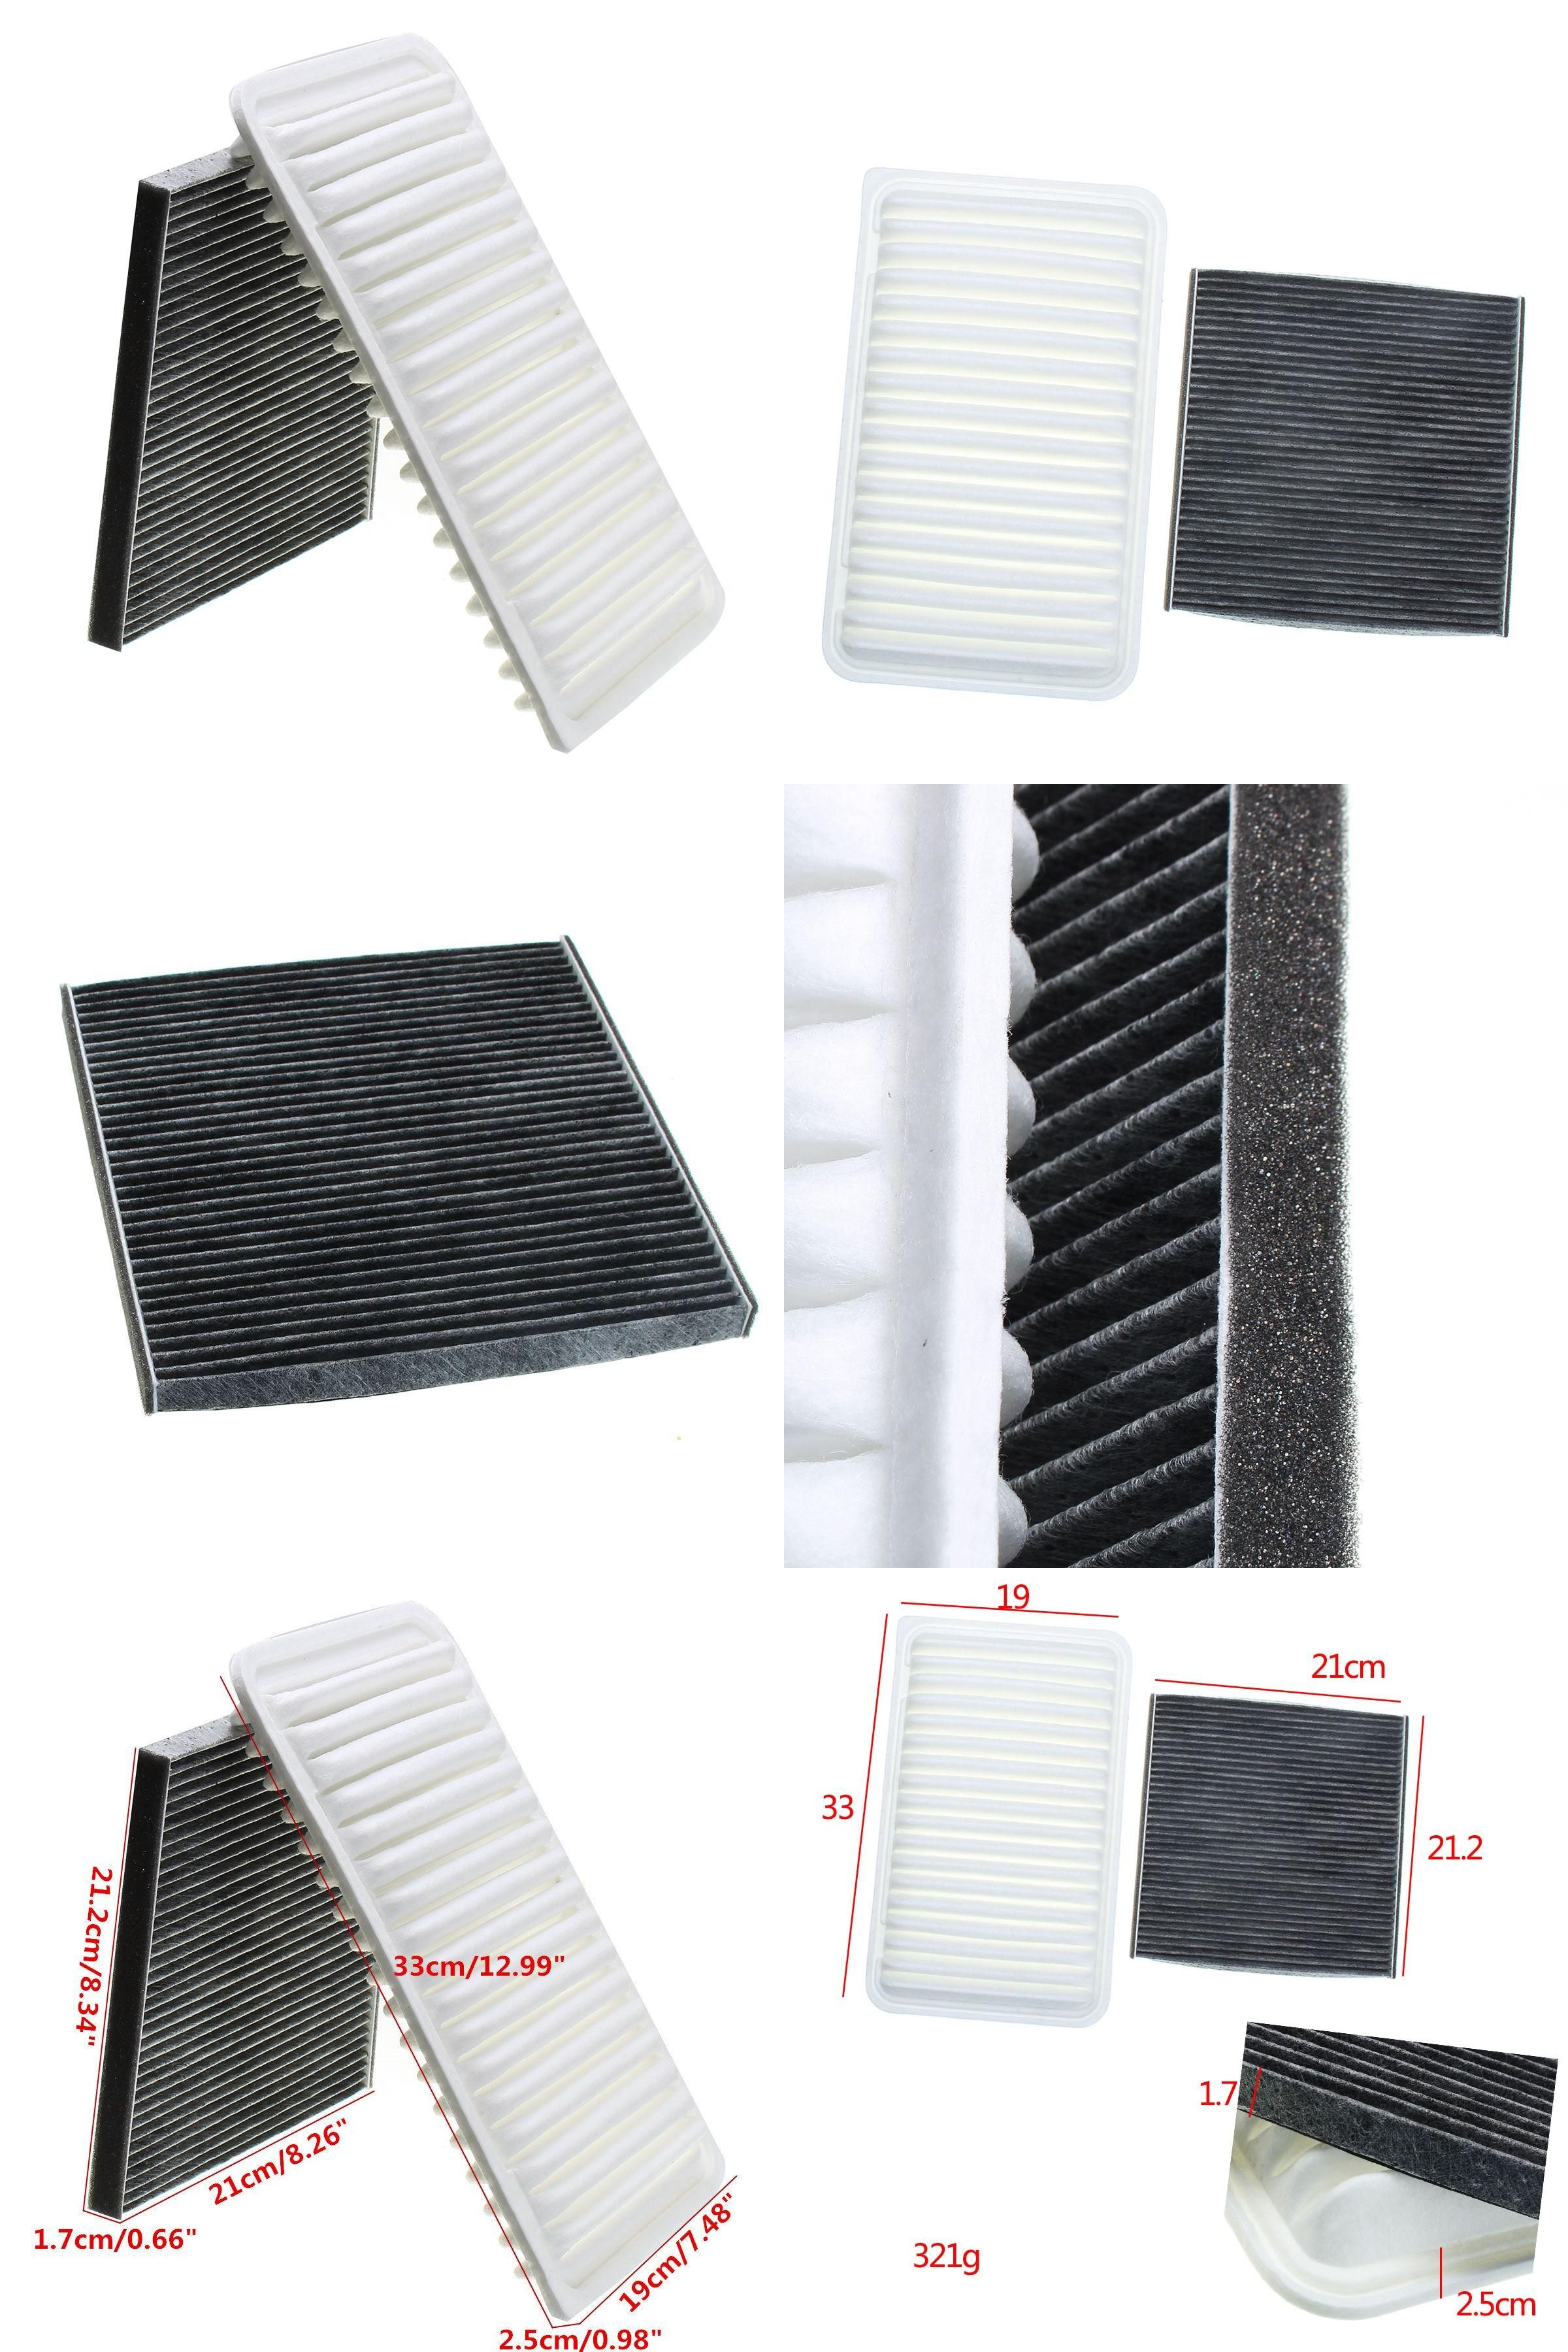 f333c9c2c4b06d44db6309d06748c32c Terrific toyota Camry 2006 Air Filter Replacement Cars Trend